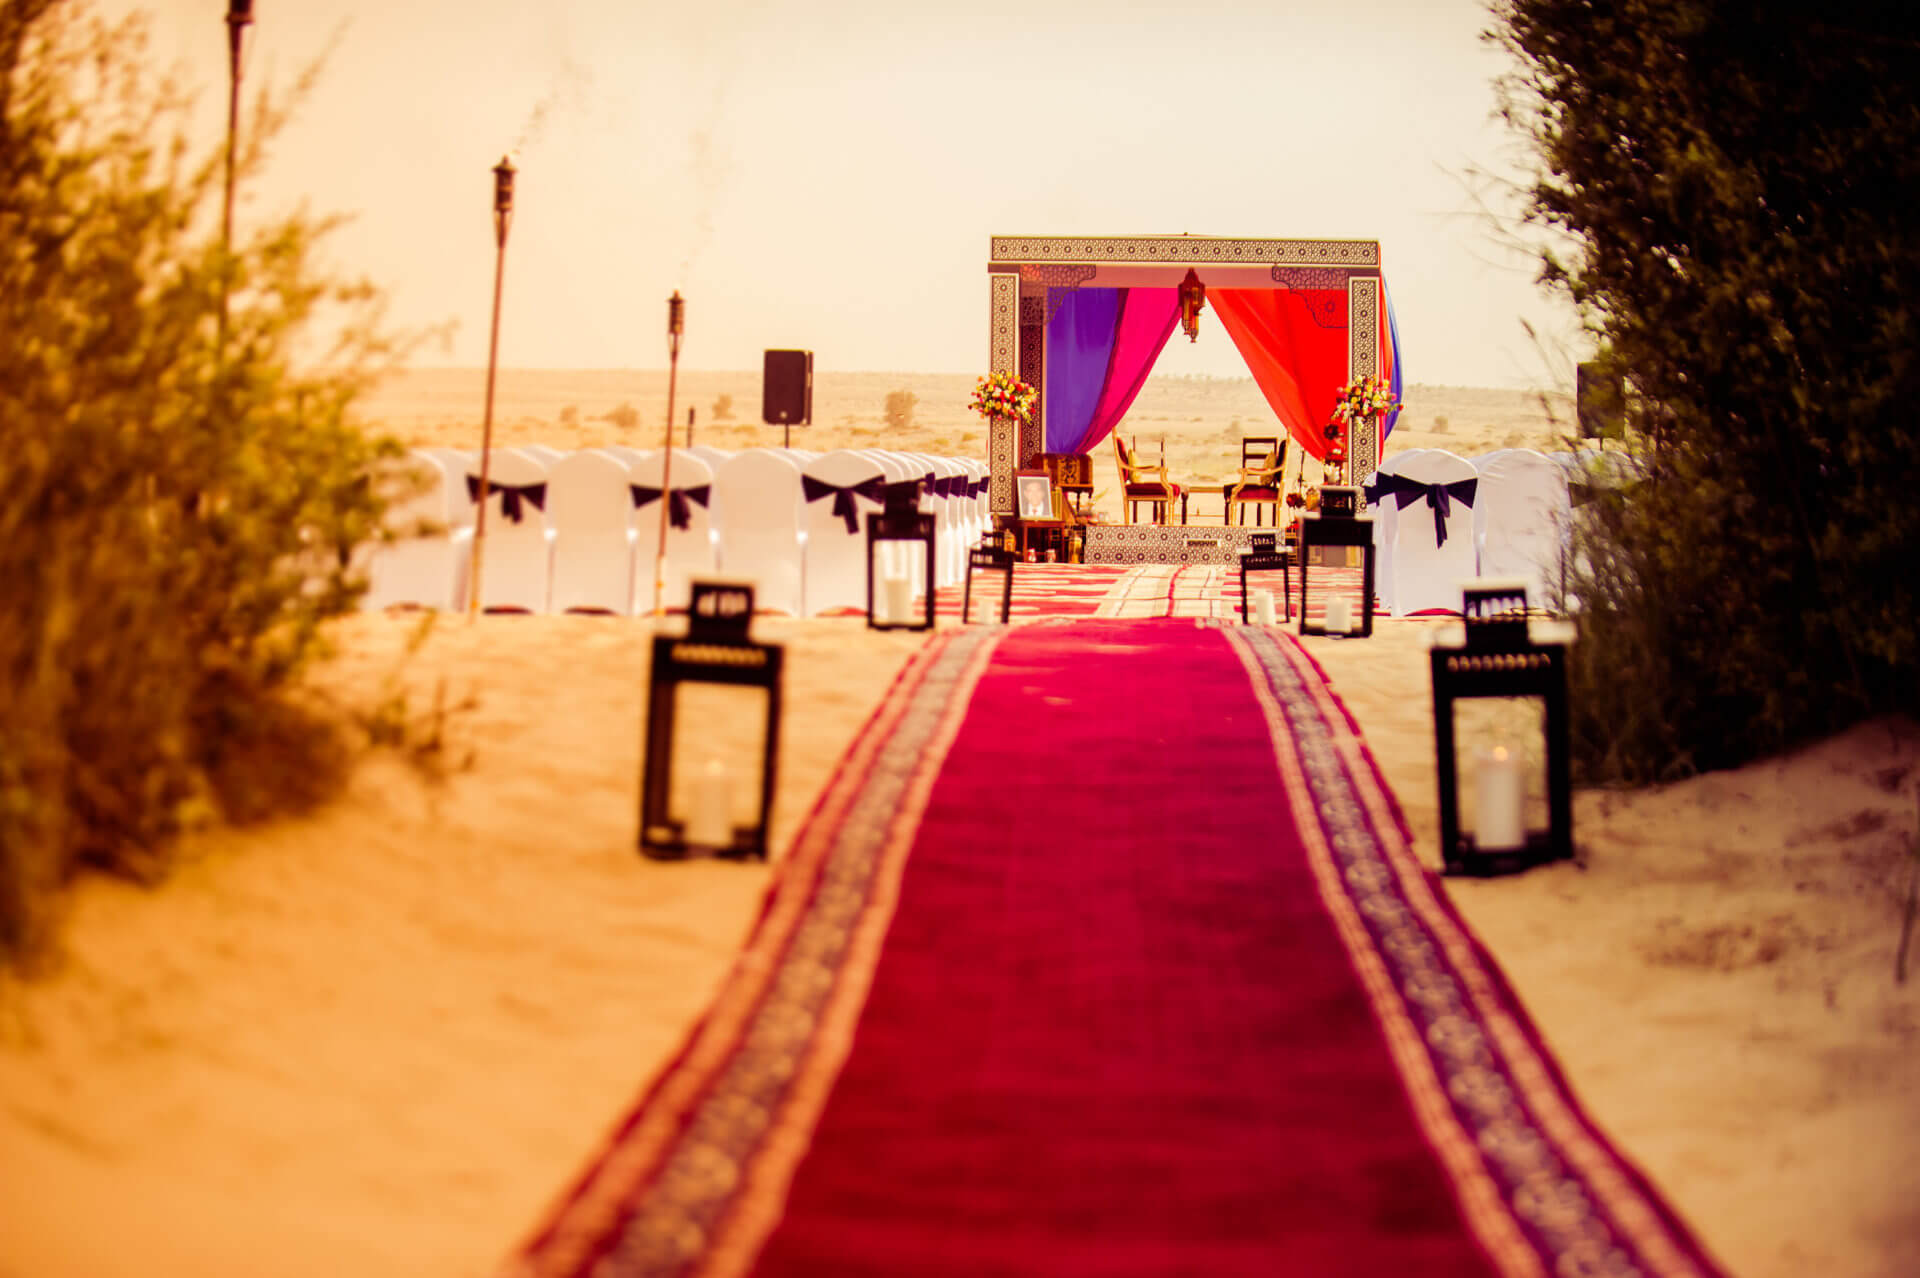 Destination wedding planner Dubai - Your Weddings & Events